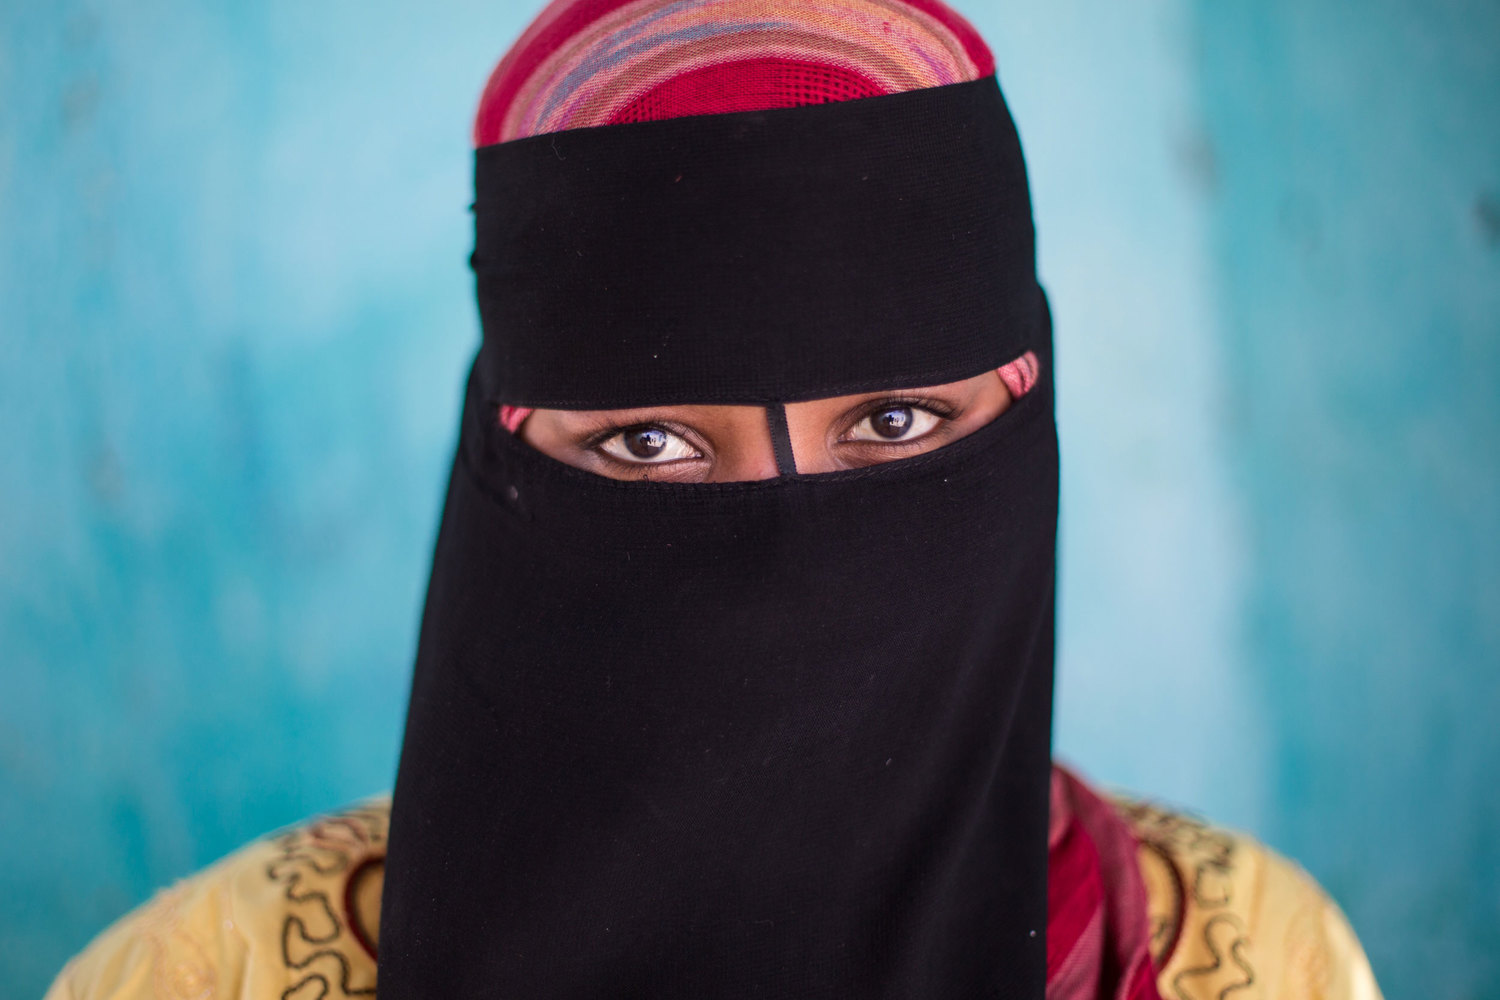 Fawzeya from Heisa Island wears the niqab when she goes out during the day, because she does not want her skin to tan. With Aswan located so close to the equator, it is sunny with summer-like temperatures all year around.